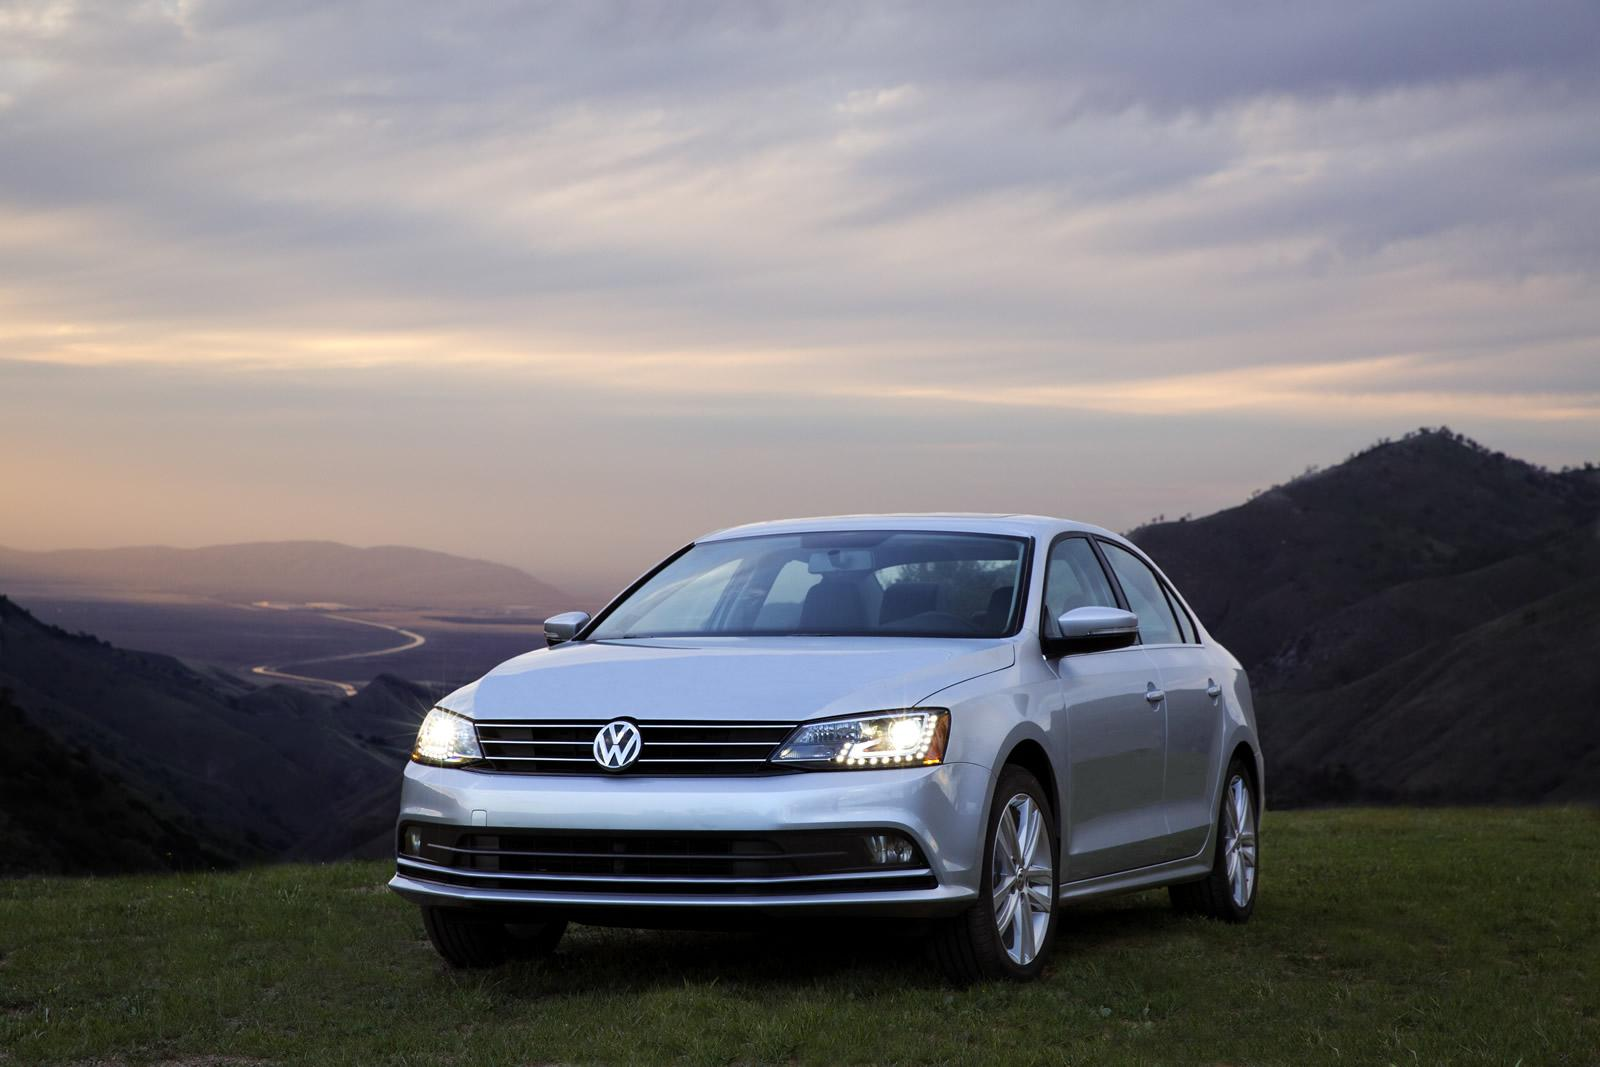 mileage overdrive volkswagen jetta gallery cars reviews specification price